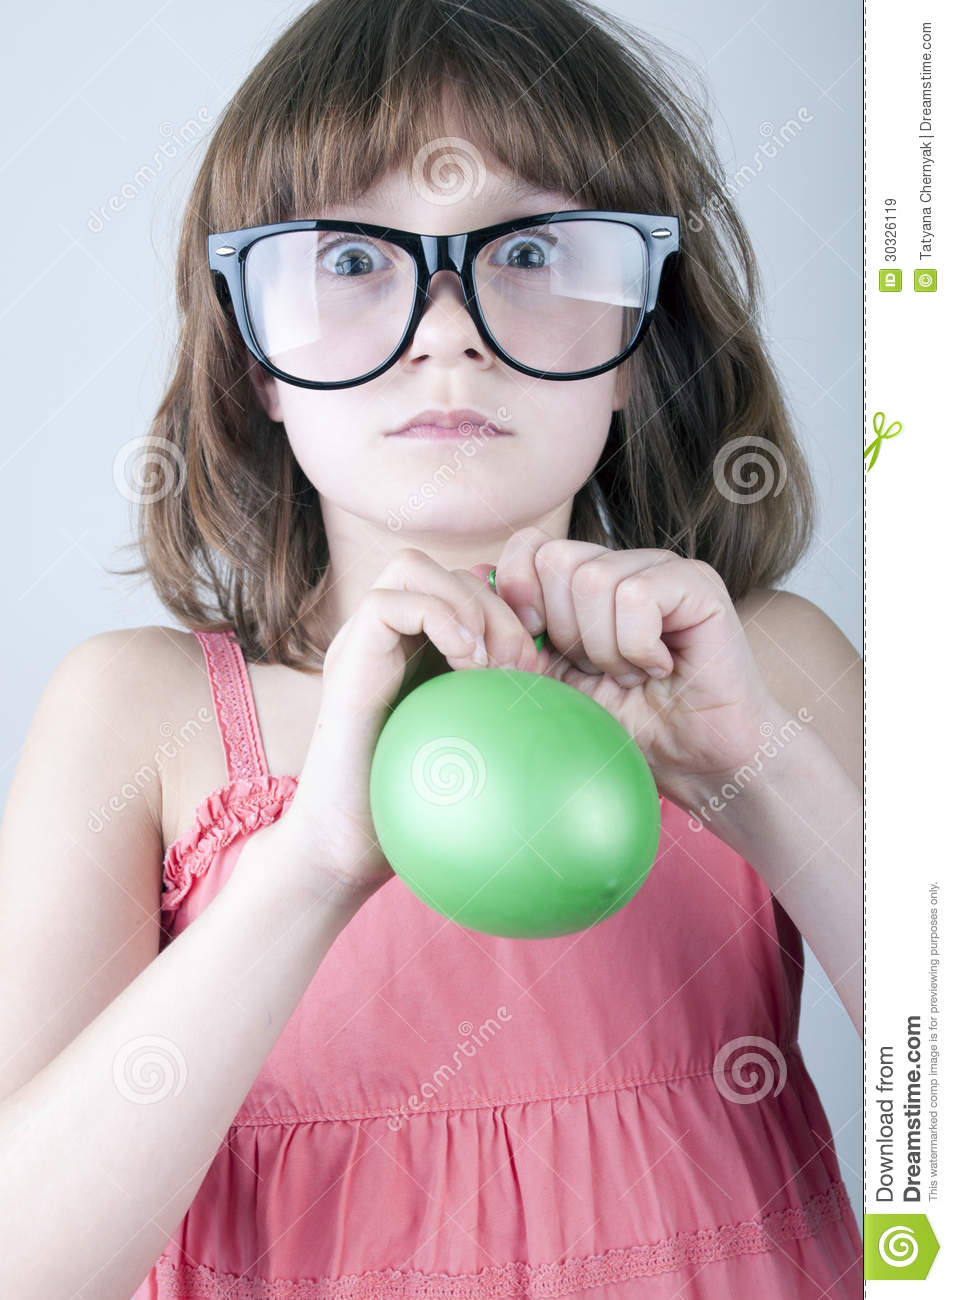 Funny girl with herd sunglasses blowing a balloon